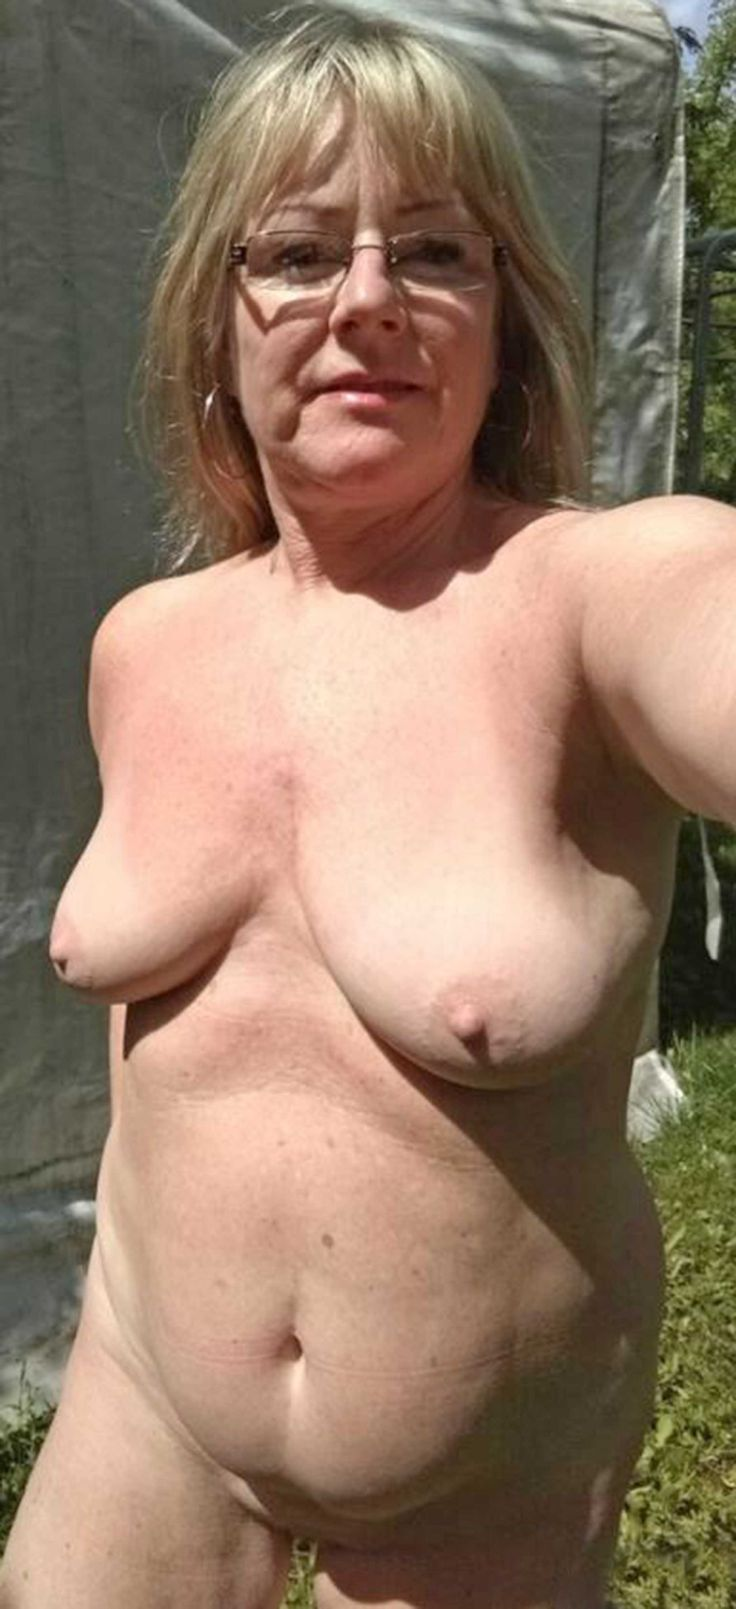 Consider, Mature nude older women outside tumblr think, that